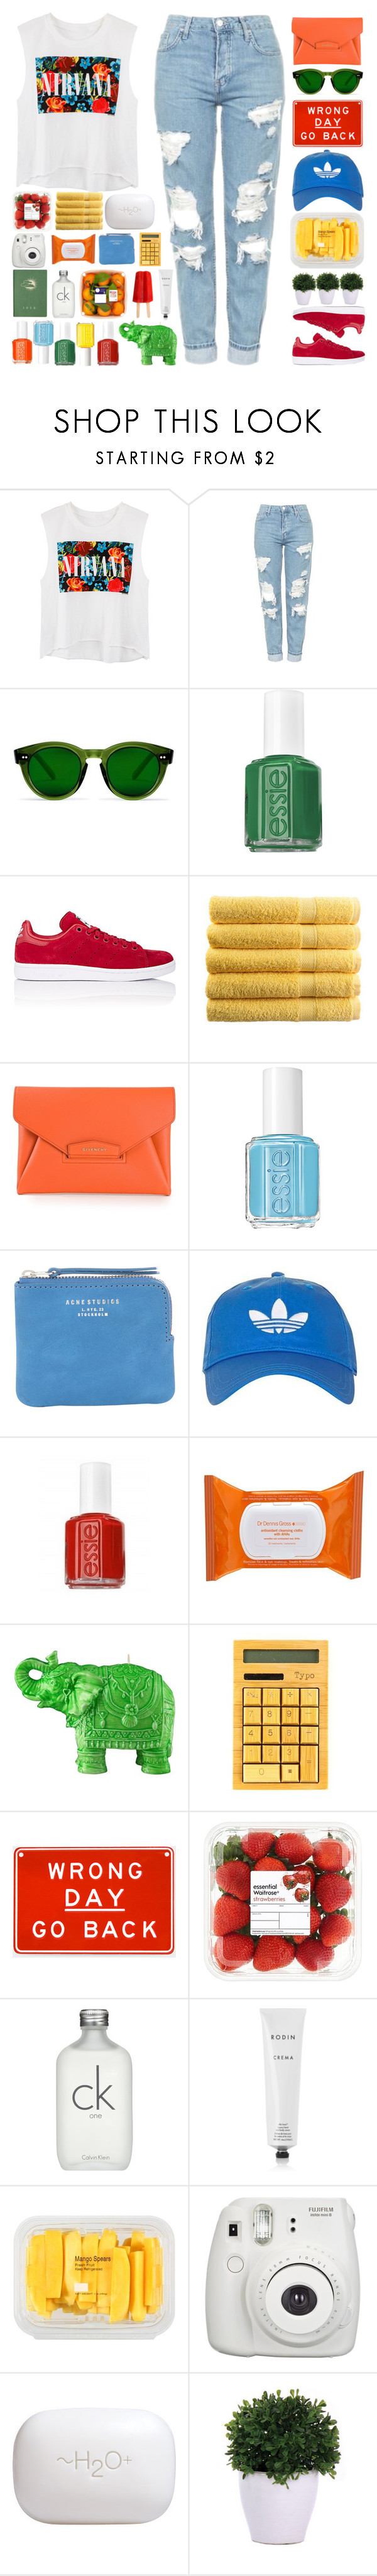 """""""Courtney"""" by vandesousa ❤ liked on Polyvore featuring Topshop, Essie, adidas, Givenchy, Acne Studios, Dr. Dennis Gross Skincare, Mario Luca Giusti, Calvin Klein, Rodin and MANGO"""